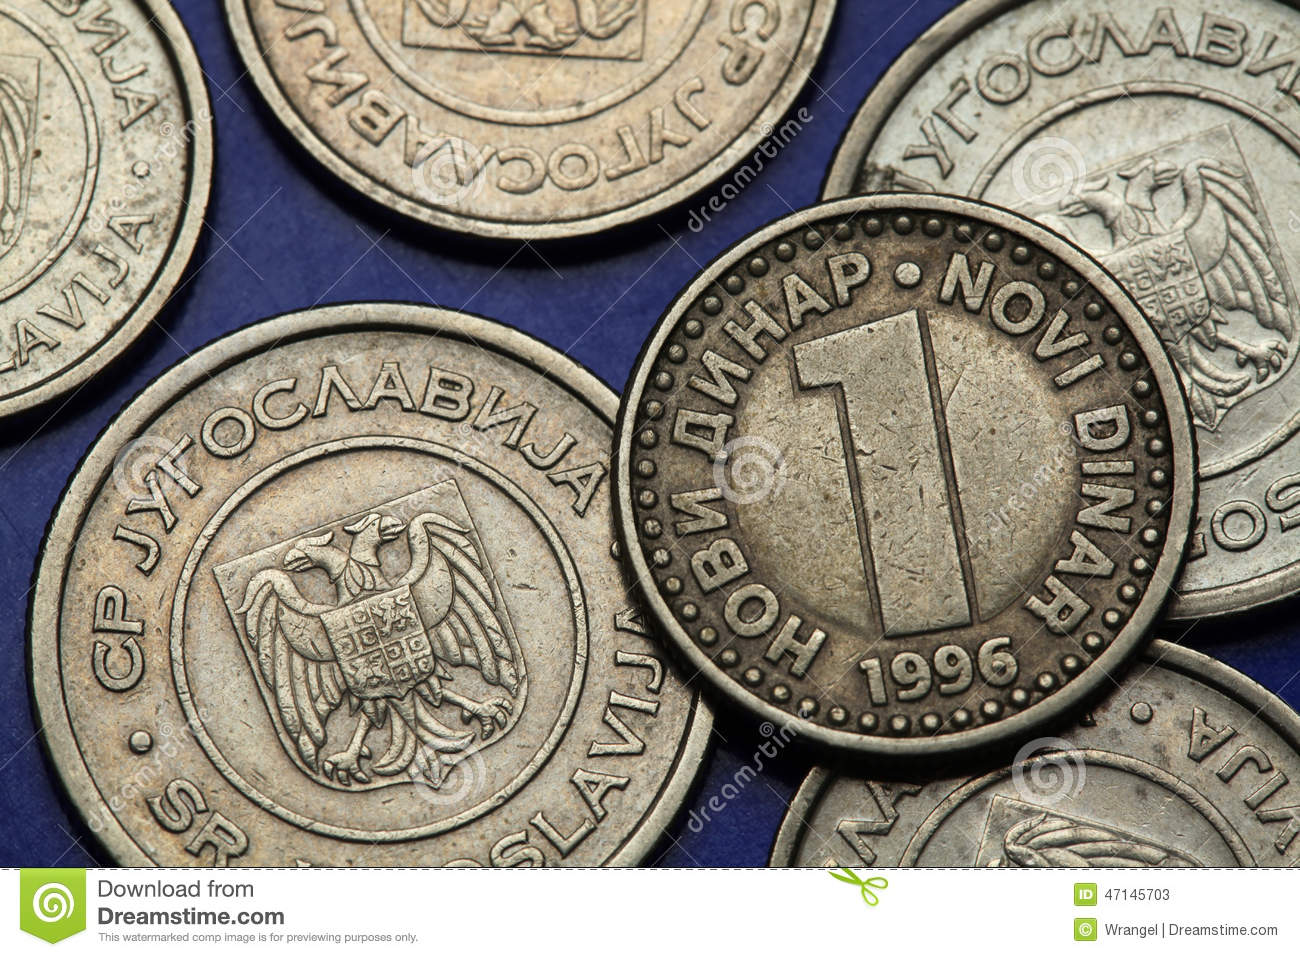 Coins of yugoslavia stock image image of dinars coins 47145703 download coins of yugoslavia stock image image of dinars coins 47145703 m4hsunfo